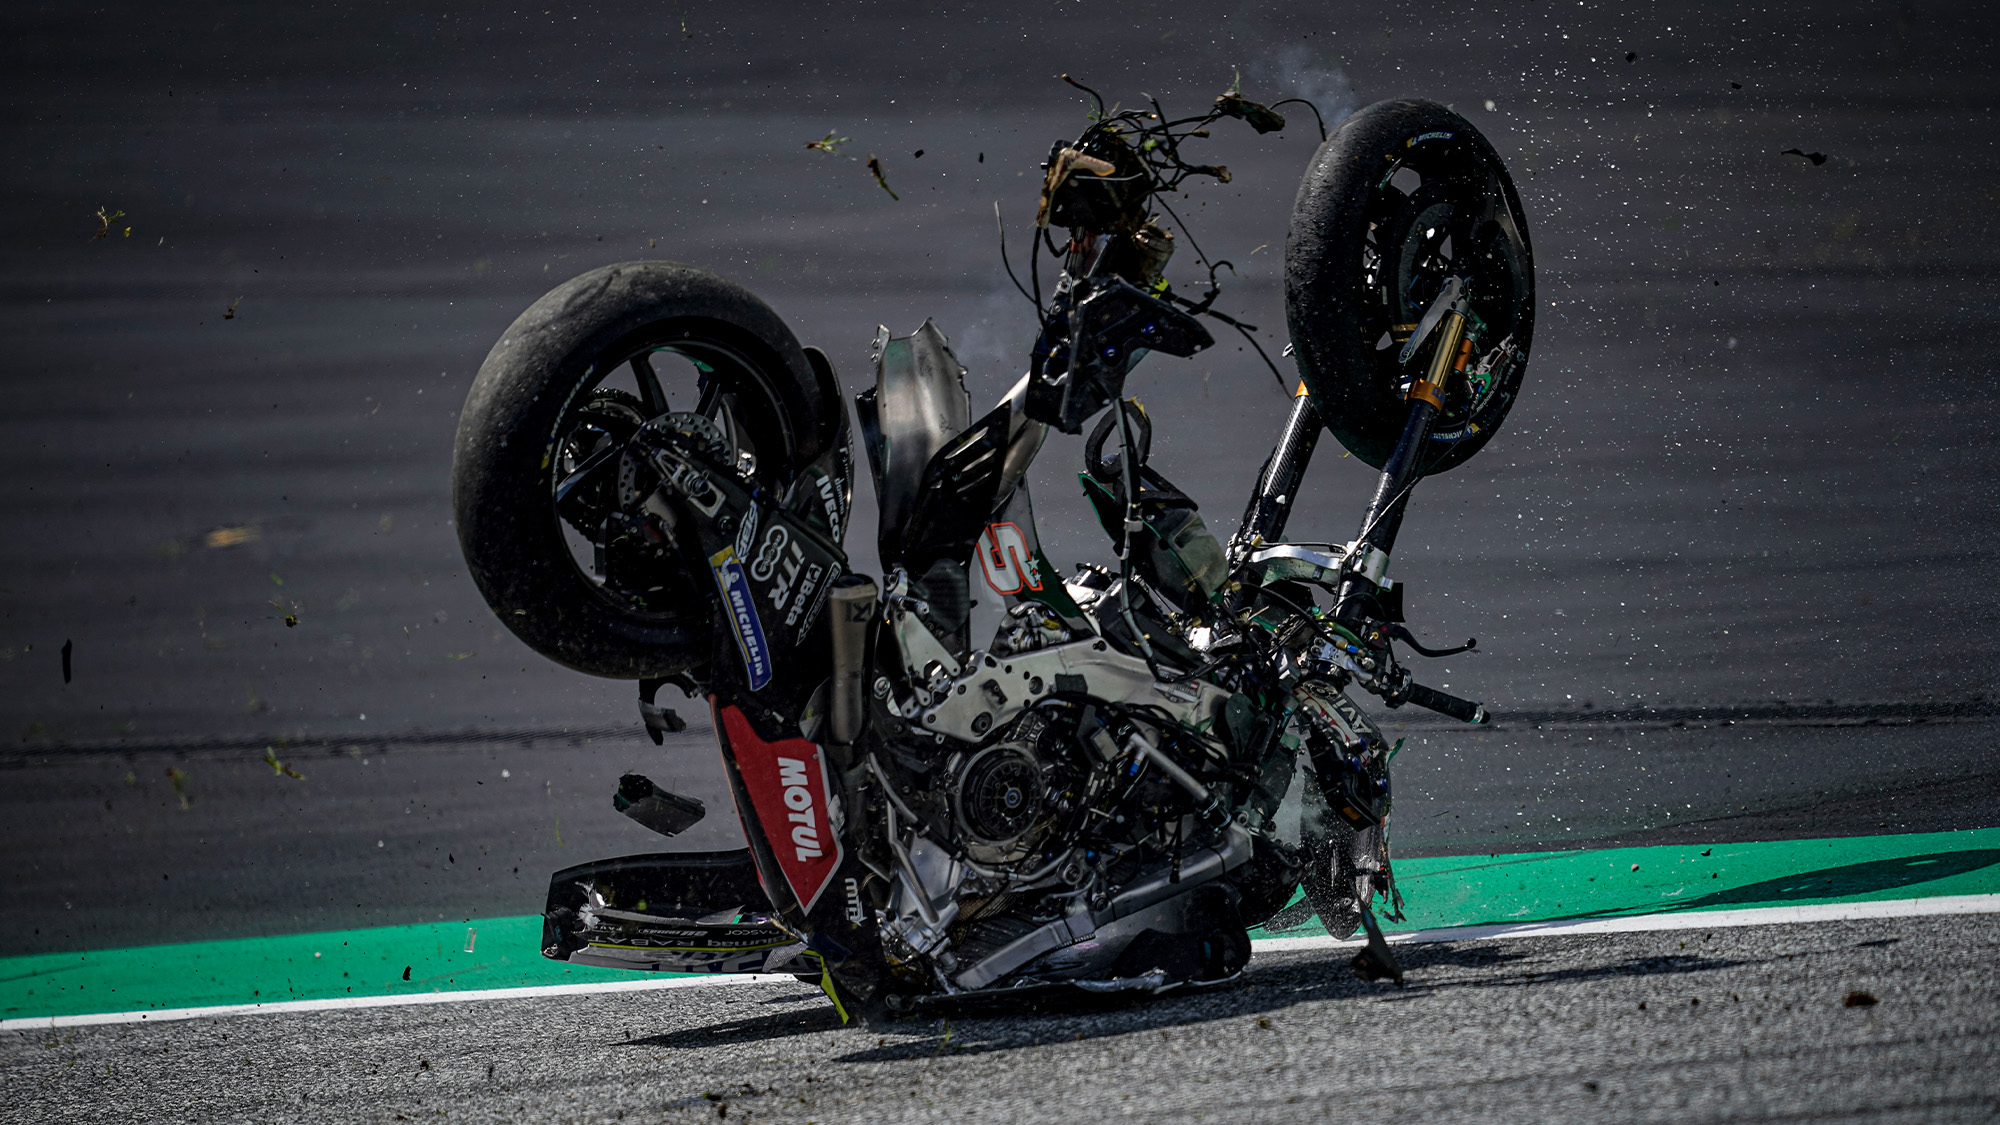 Johann Zarco's wrecked bike on the ground at the Red Bull Ring after a collision with Franco Morbidelli's Yamaha in the 2020 MotoGP Austrian Grand Prix